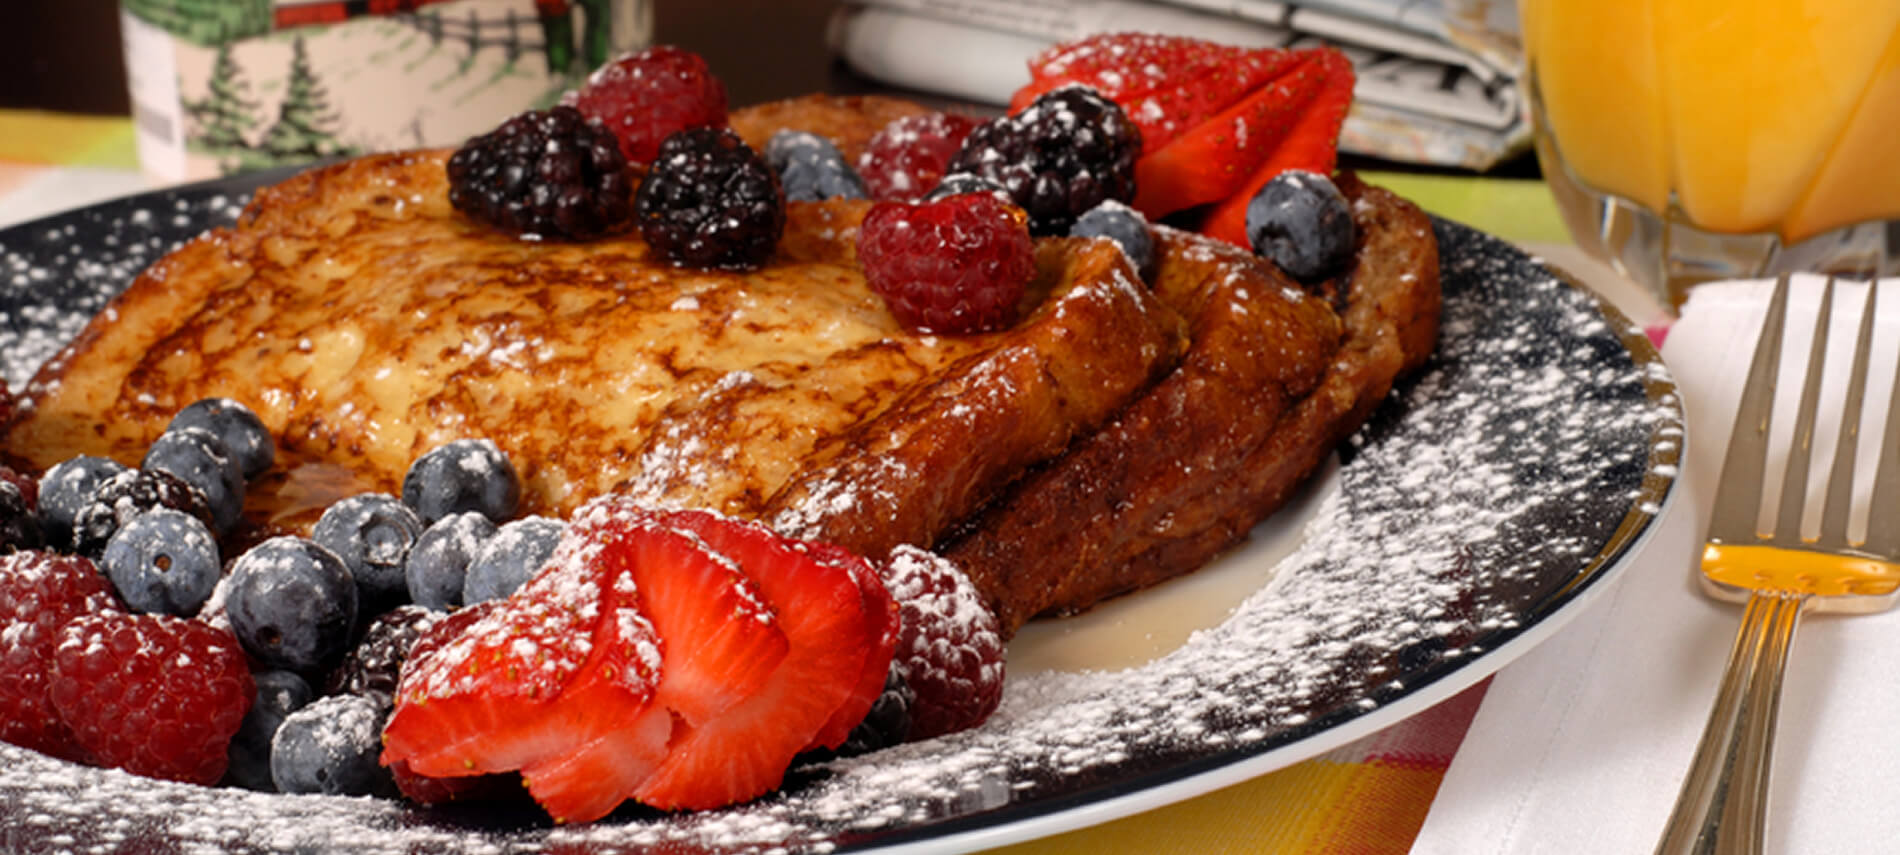 breakfast french toast_1883910